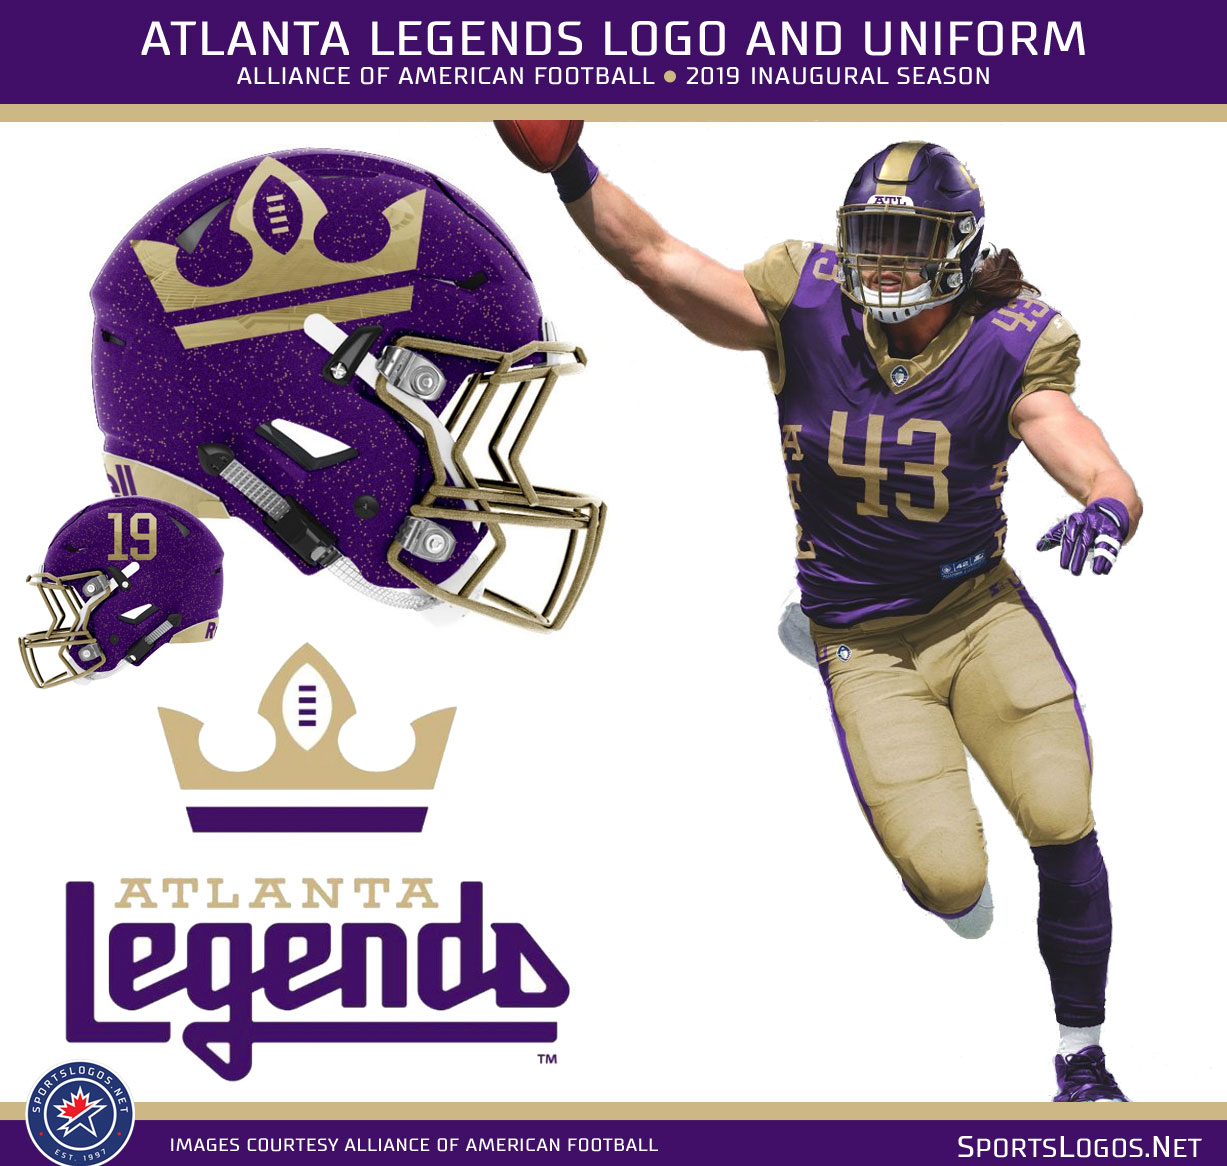 Atlanta-Legends-AAF-Uniforms-2019.jpg